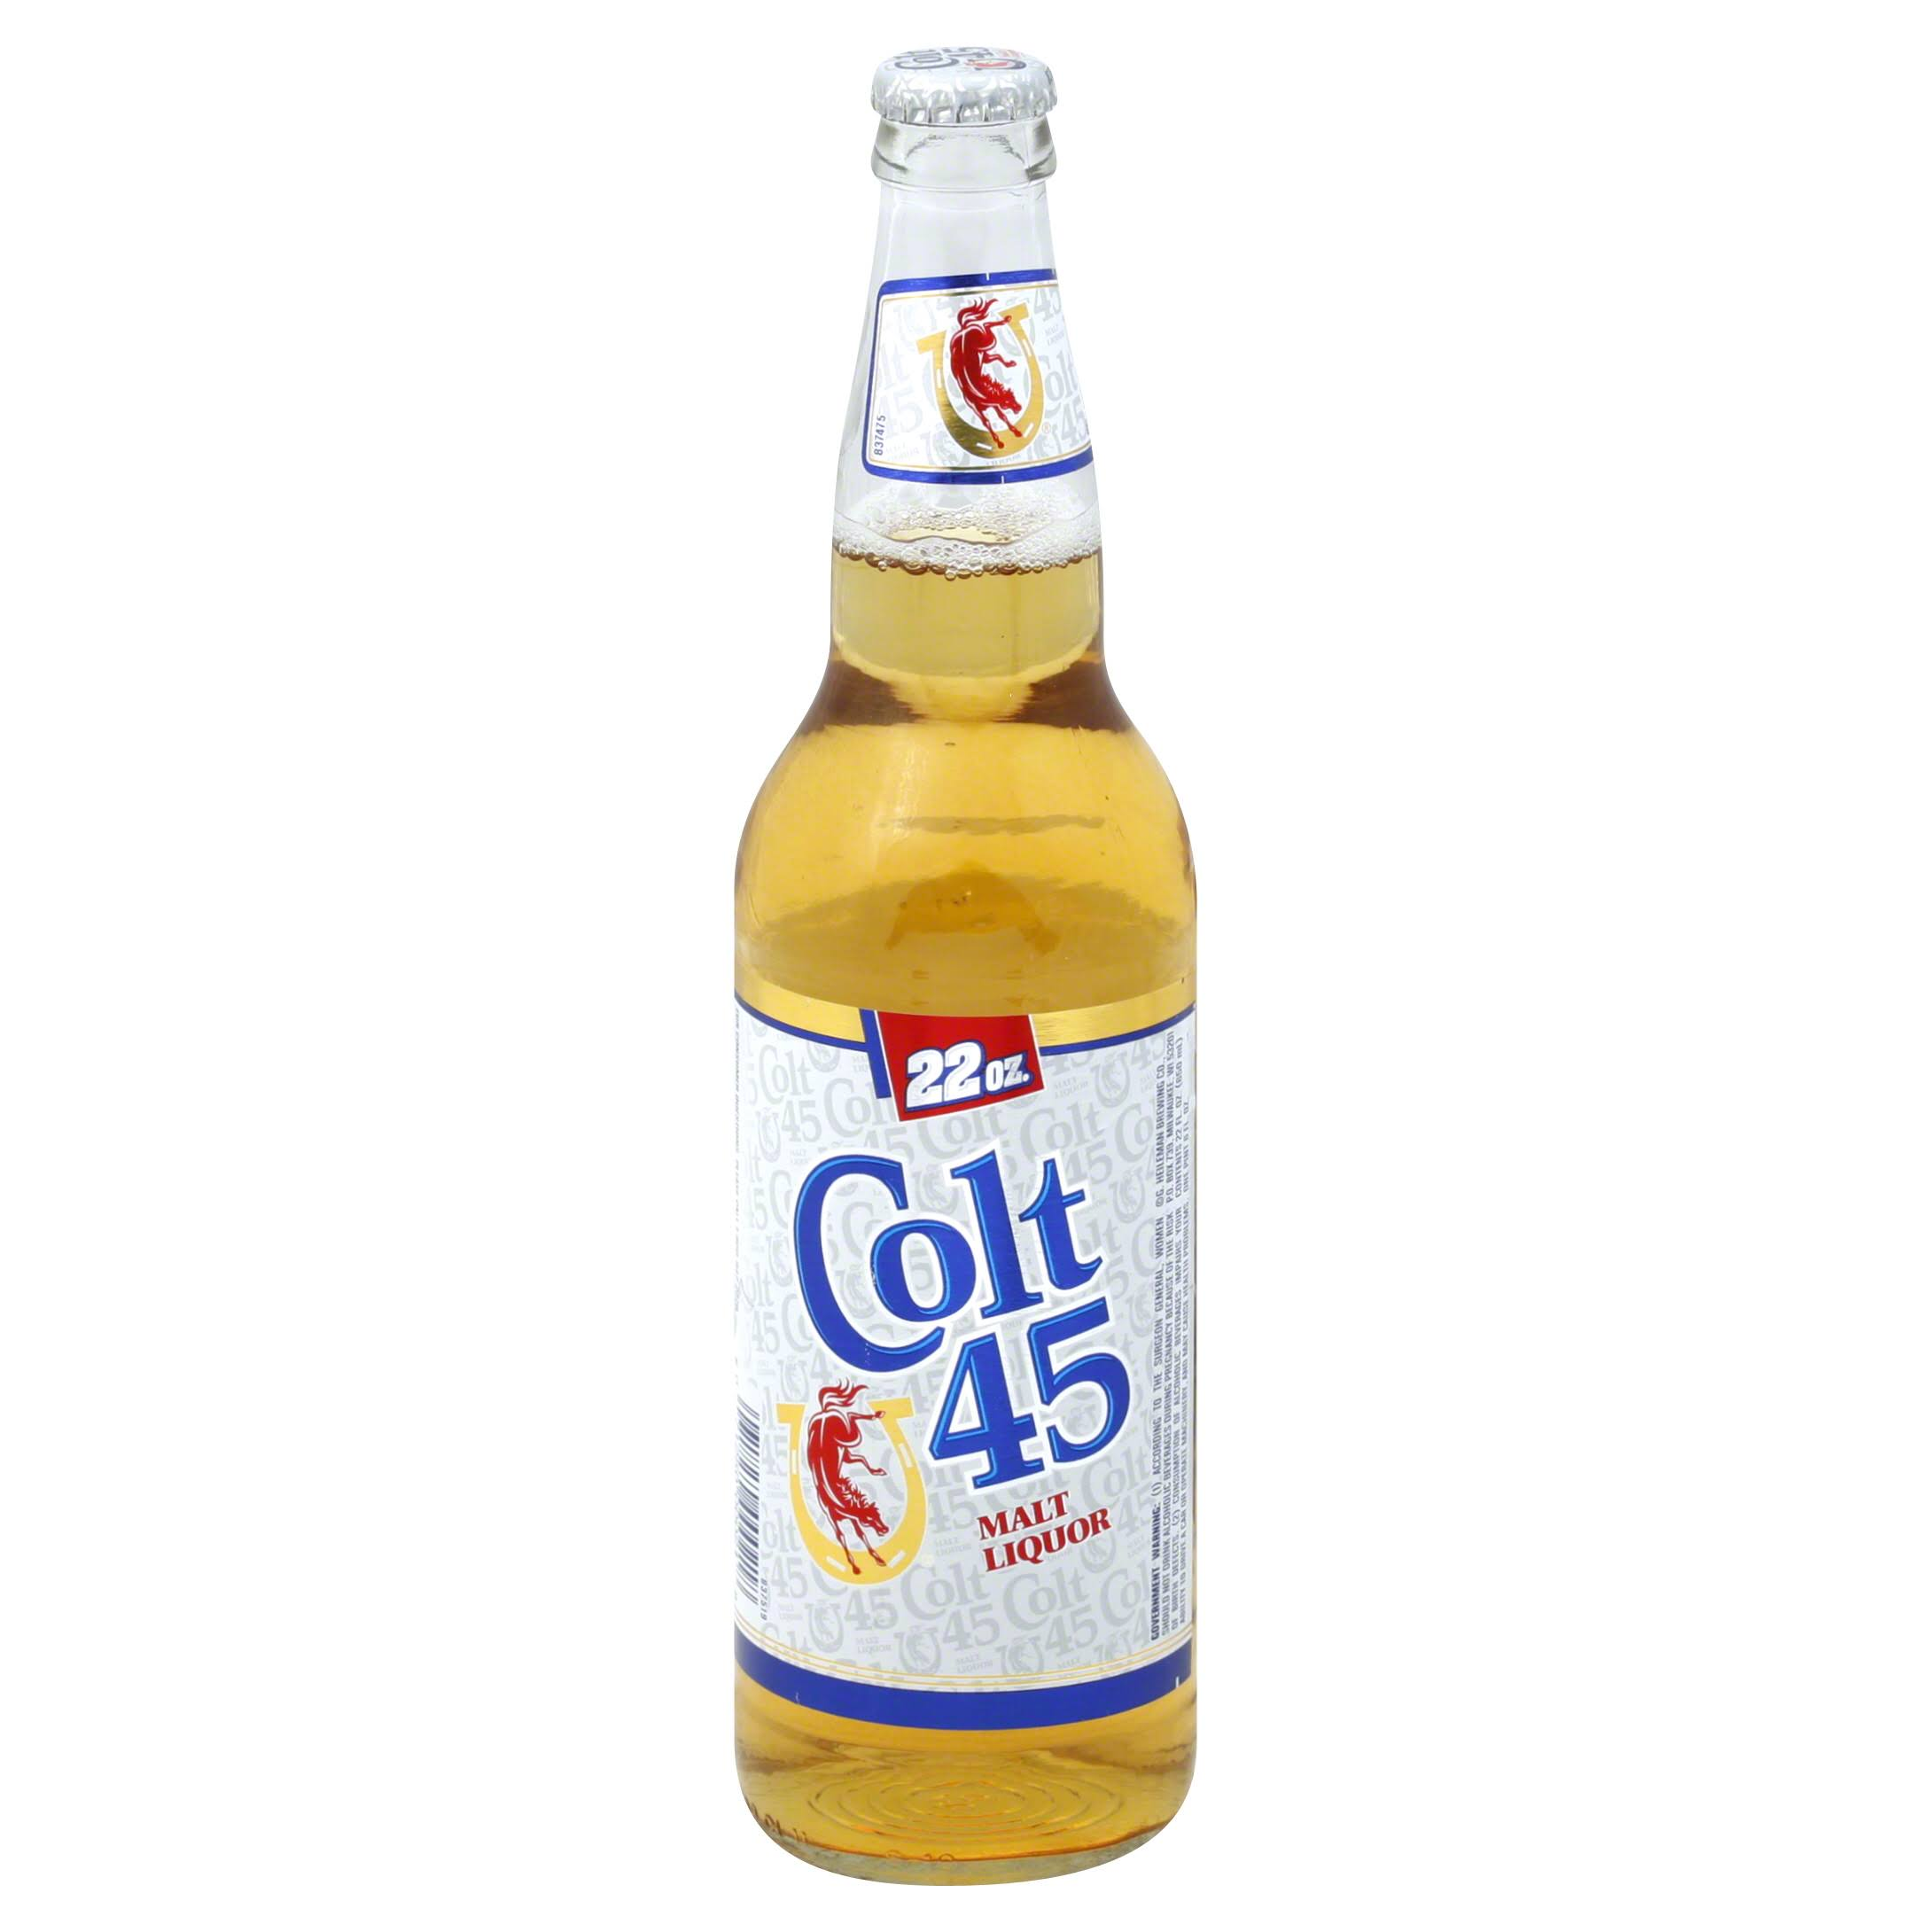 Colt 45 Malt Liquor Beer - 22oz